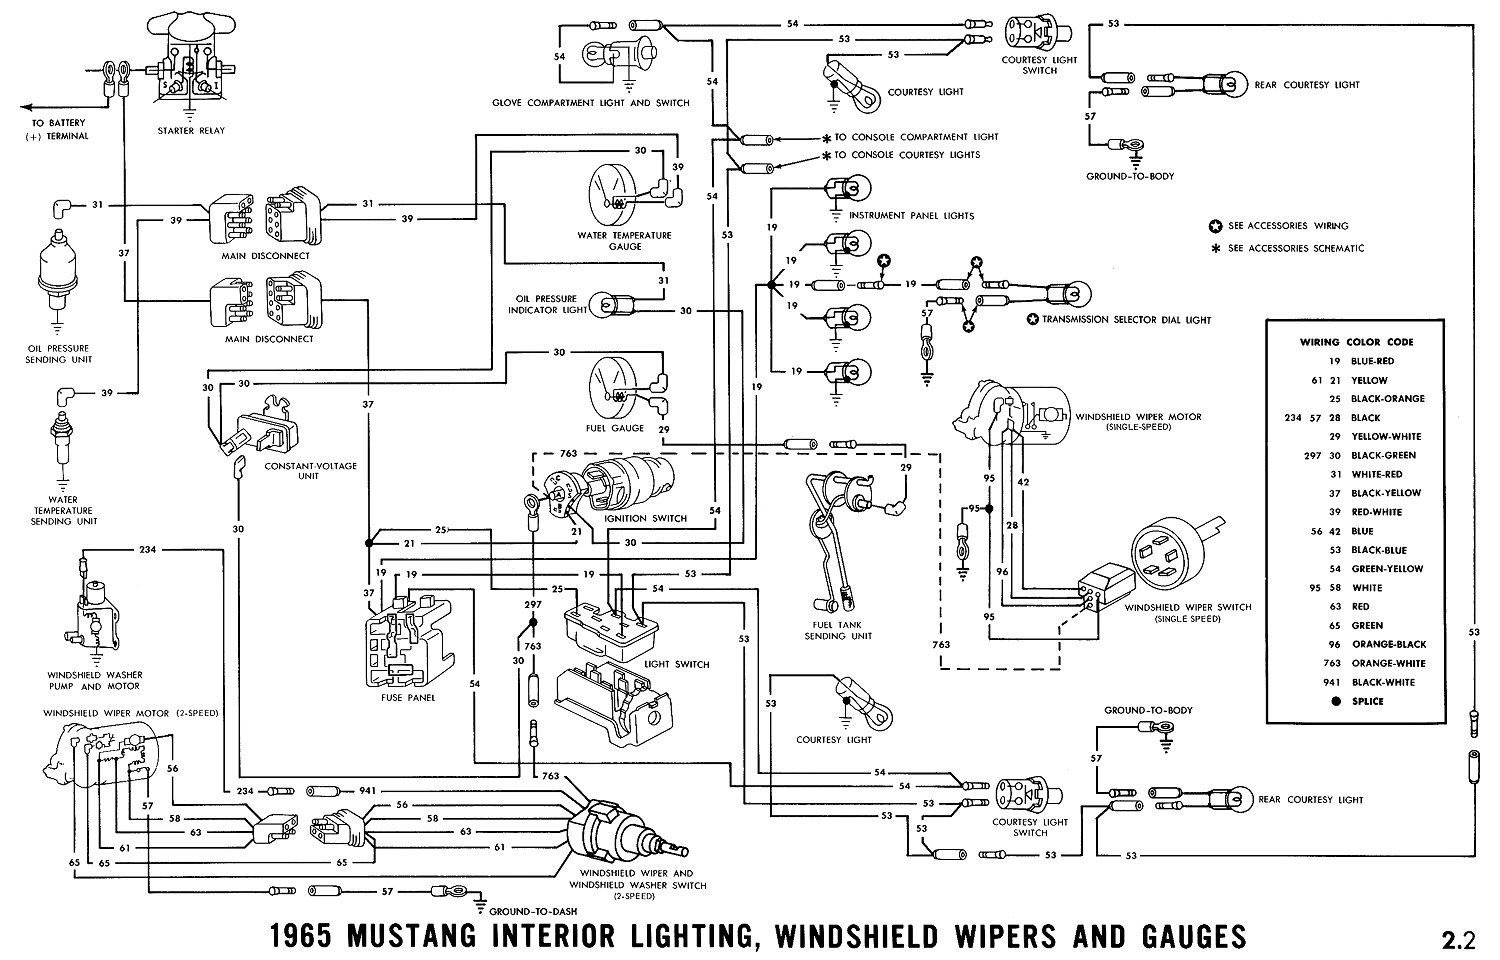 1965g mustang wiring diagrams mustang engine diagram \u2022 free wiring 1966 mustang fuse box at n-0.co